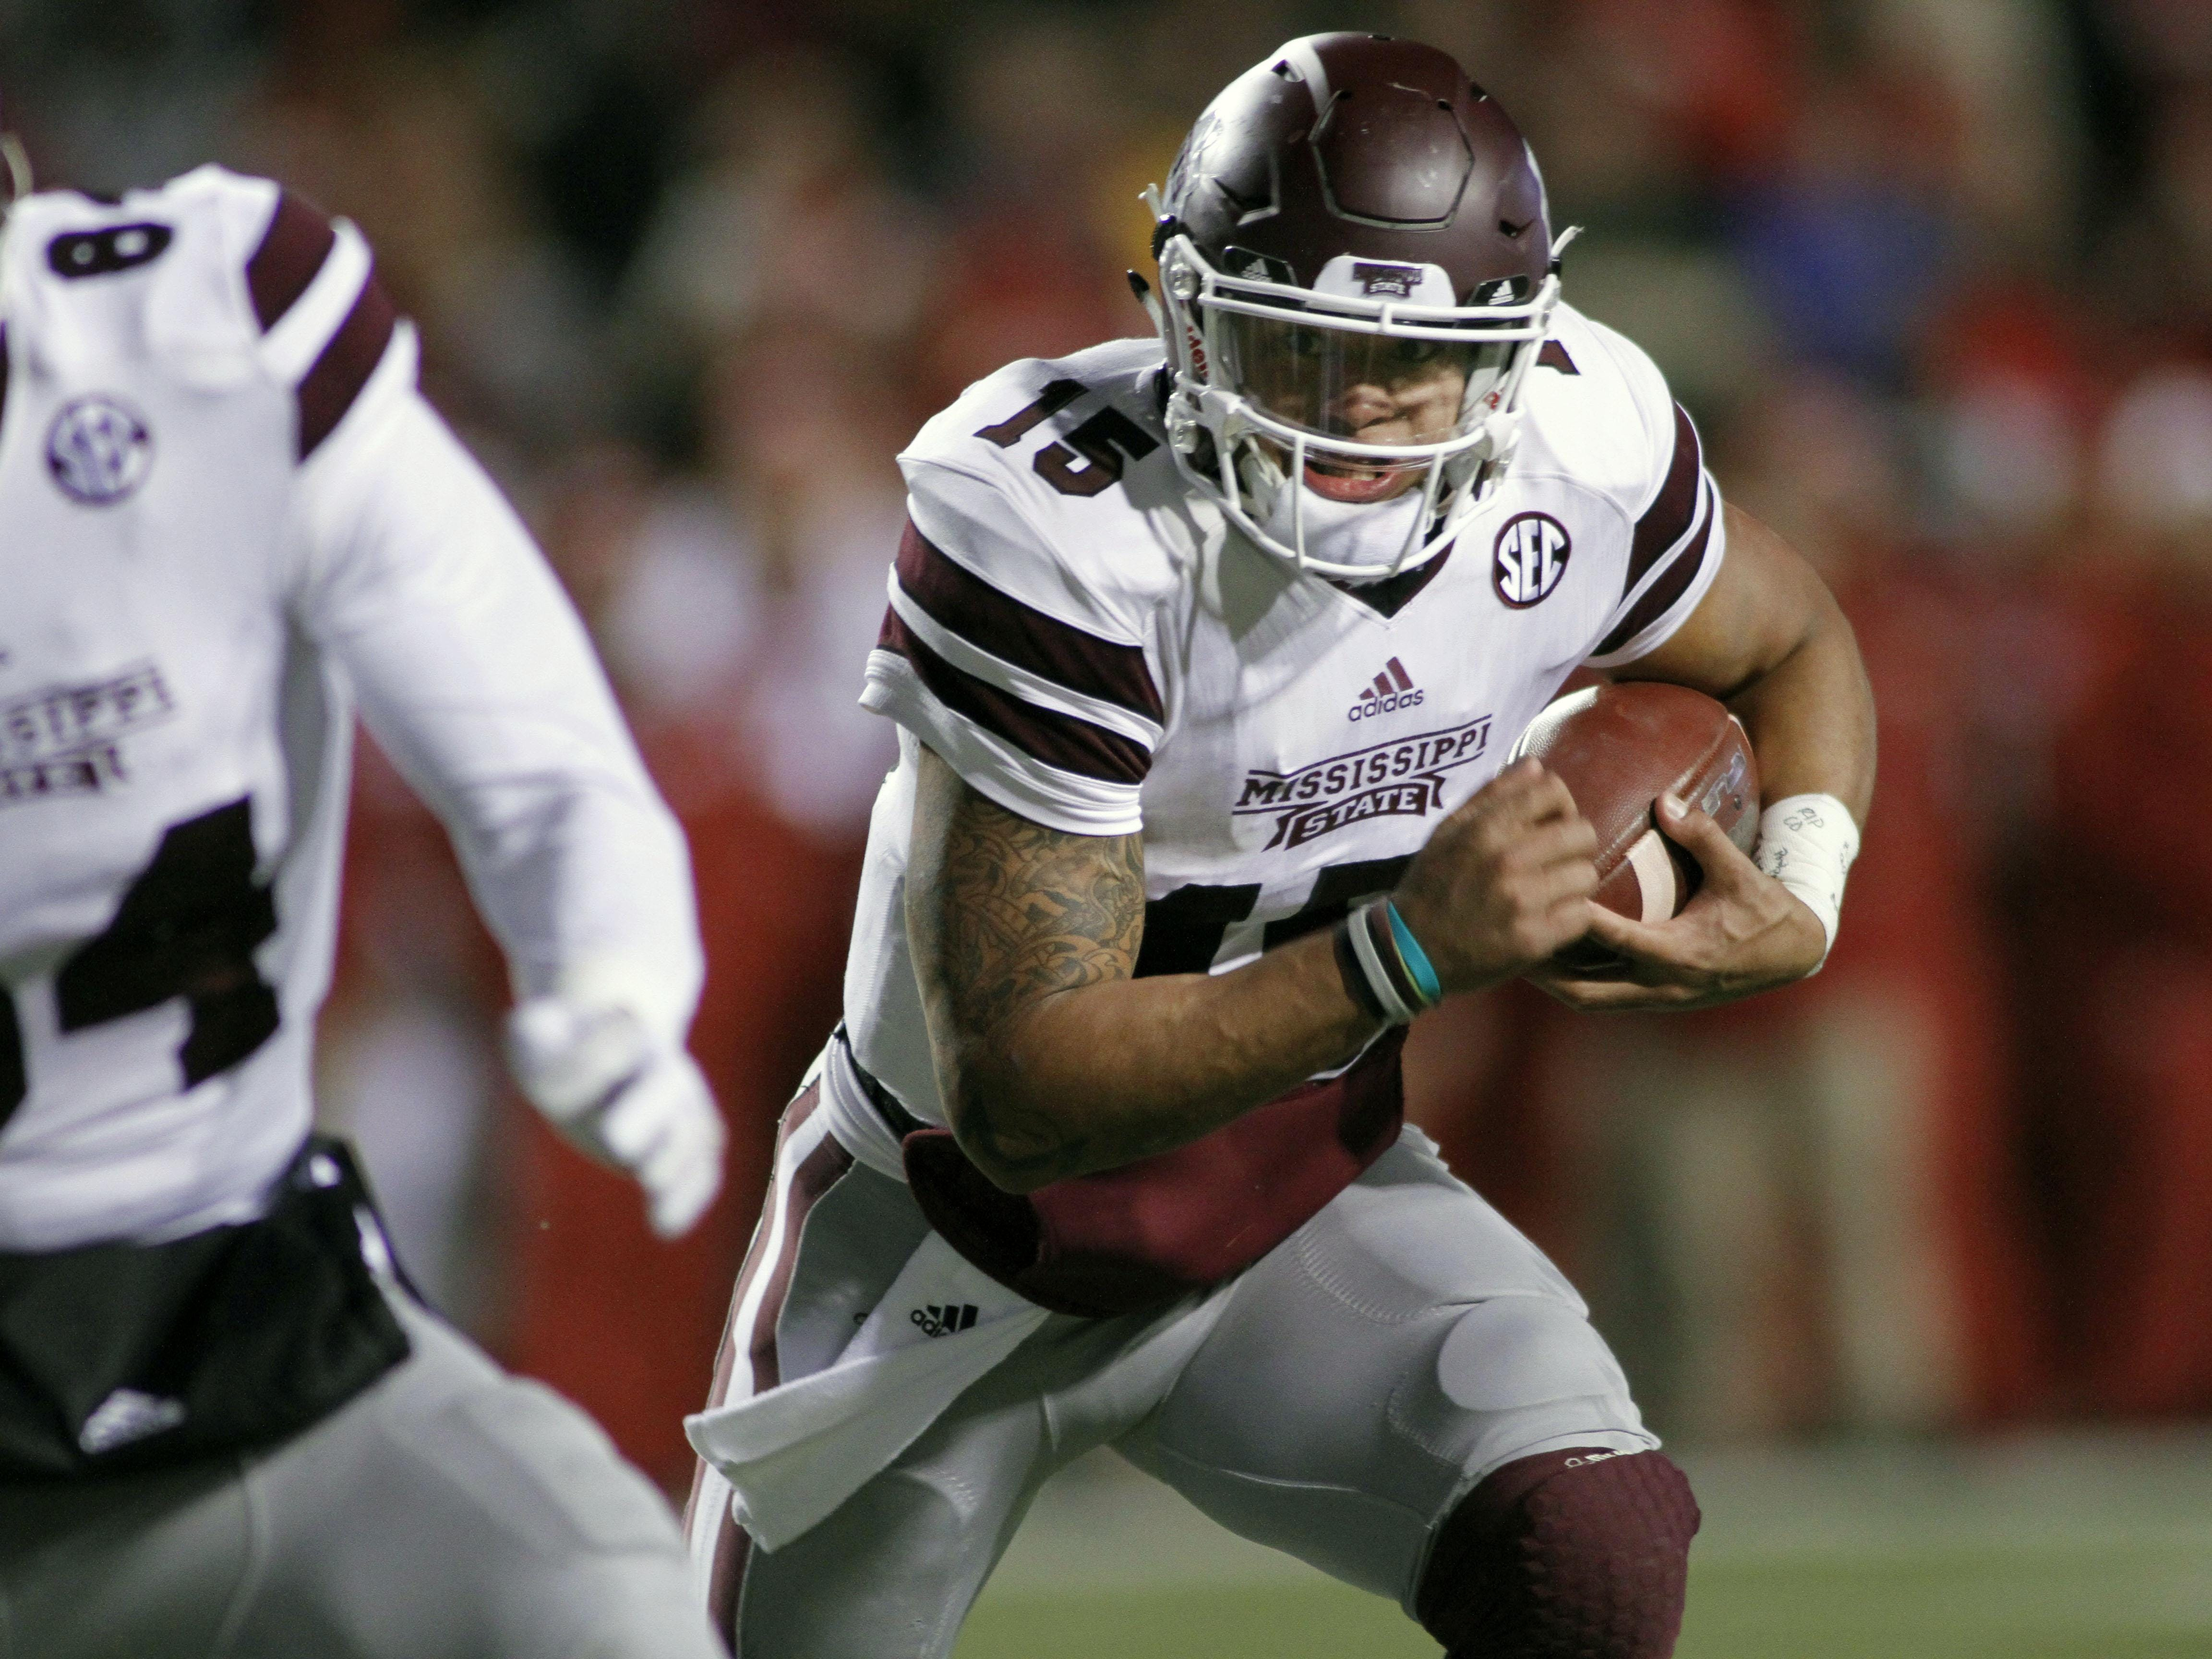 Mississippi State's Dak Prescott (15) keeps the ball and runs during the the first half against Arkansas on Saturday in Fayetteville.